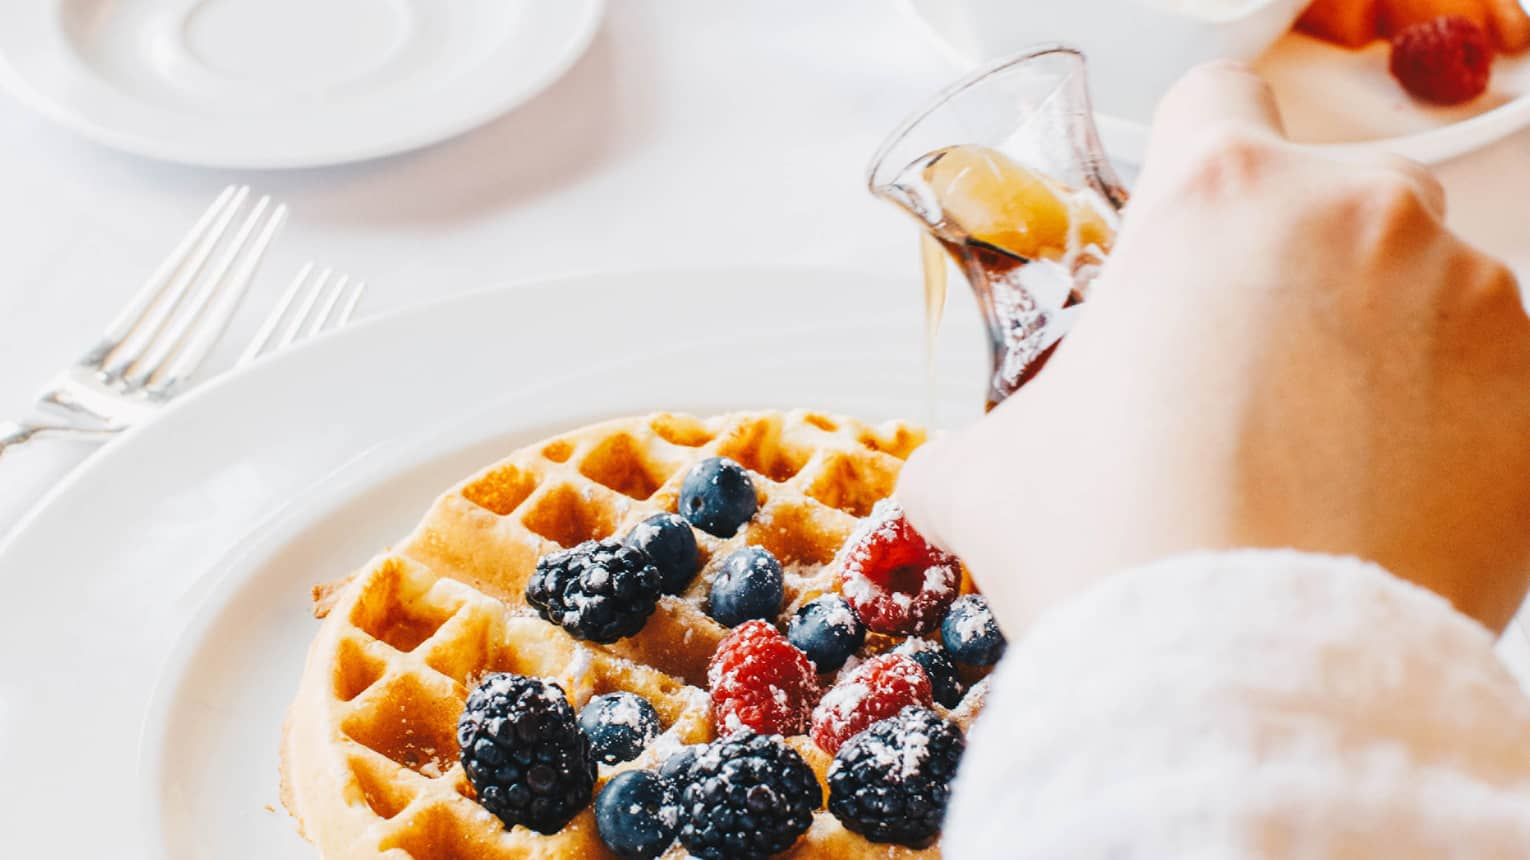 A guest pours syrup onto a Belgian waffle covered in berries